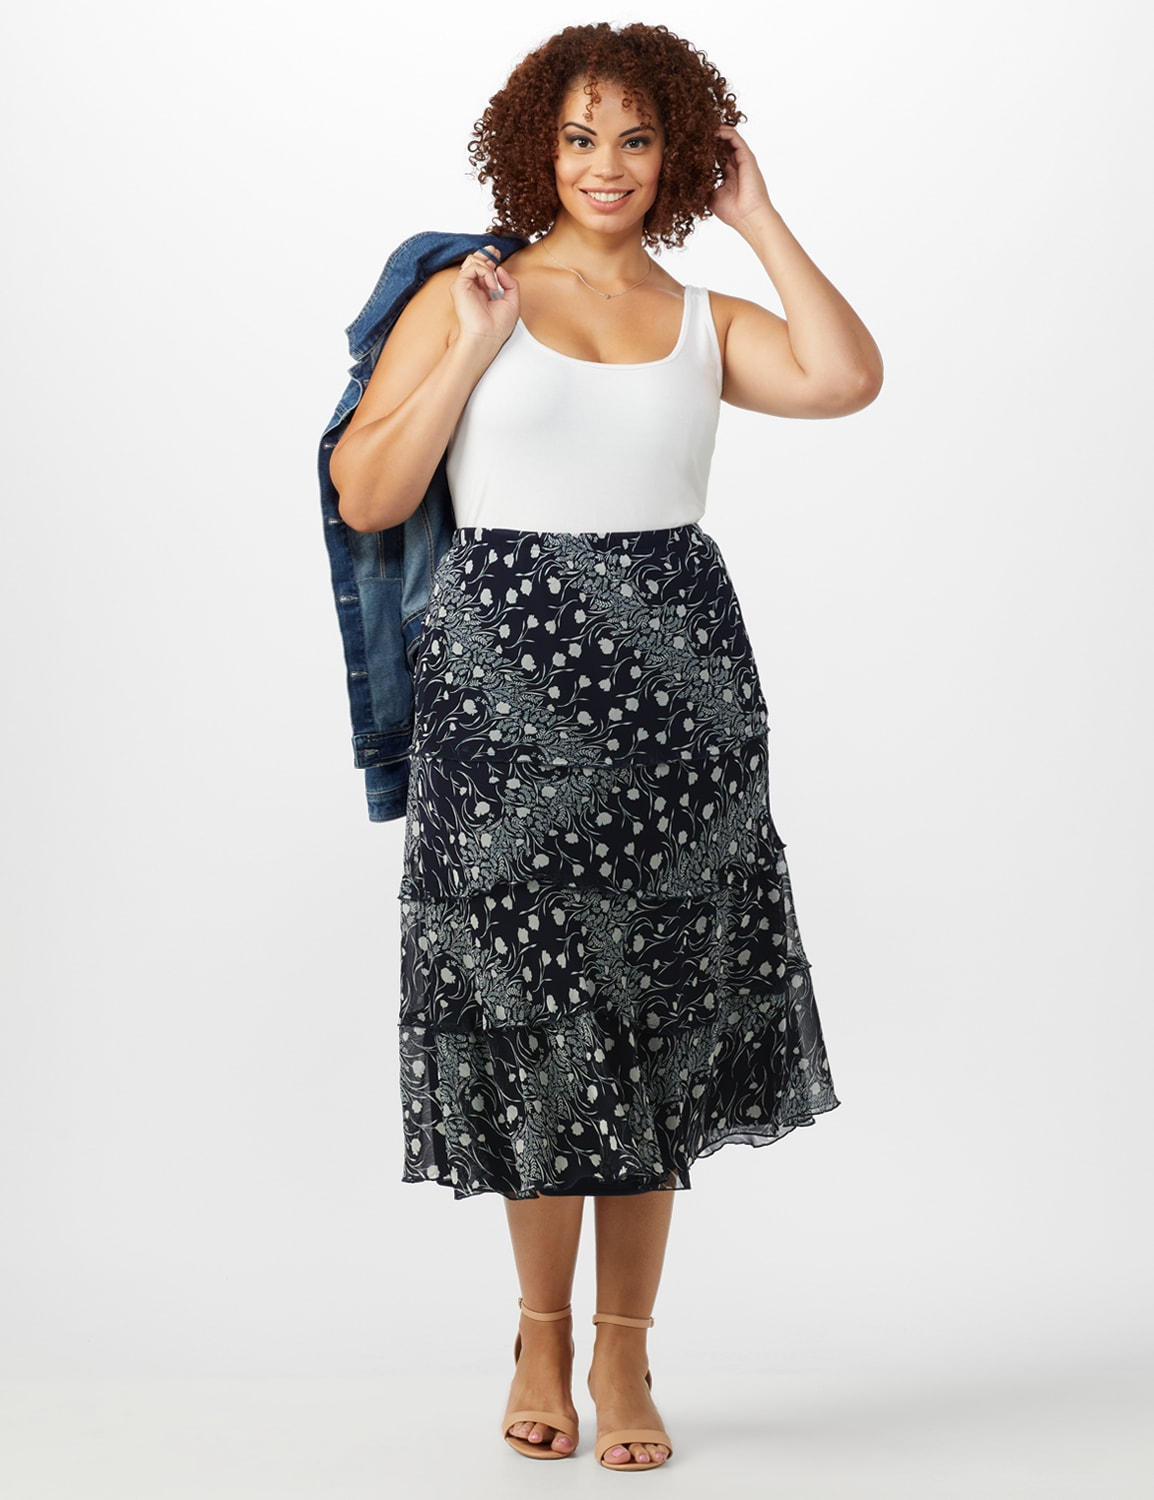 Bias Cut 4 Tiered Elastic Waist Pull On Skirt - Navy/Ivory - Front